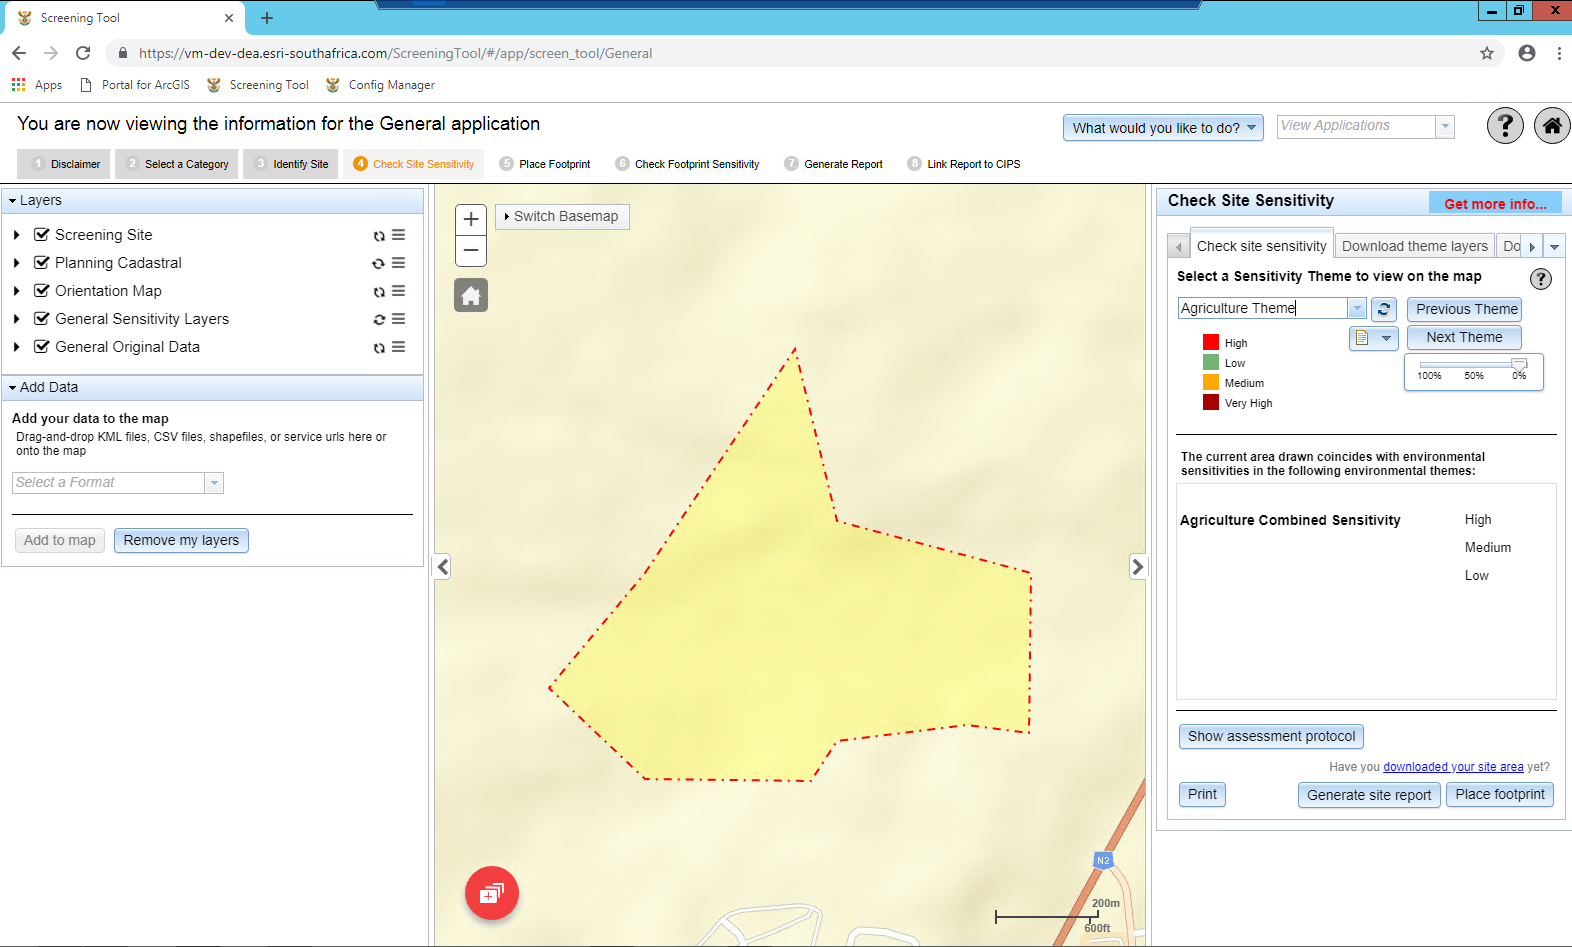 Fig. 2: To identify the site of interest users can either upload their own geospatial data of the site or search it in the right-hand panel.